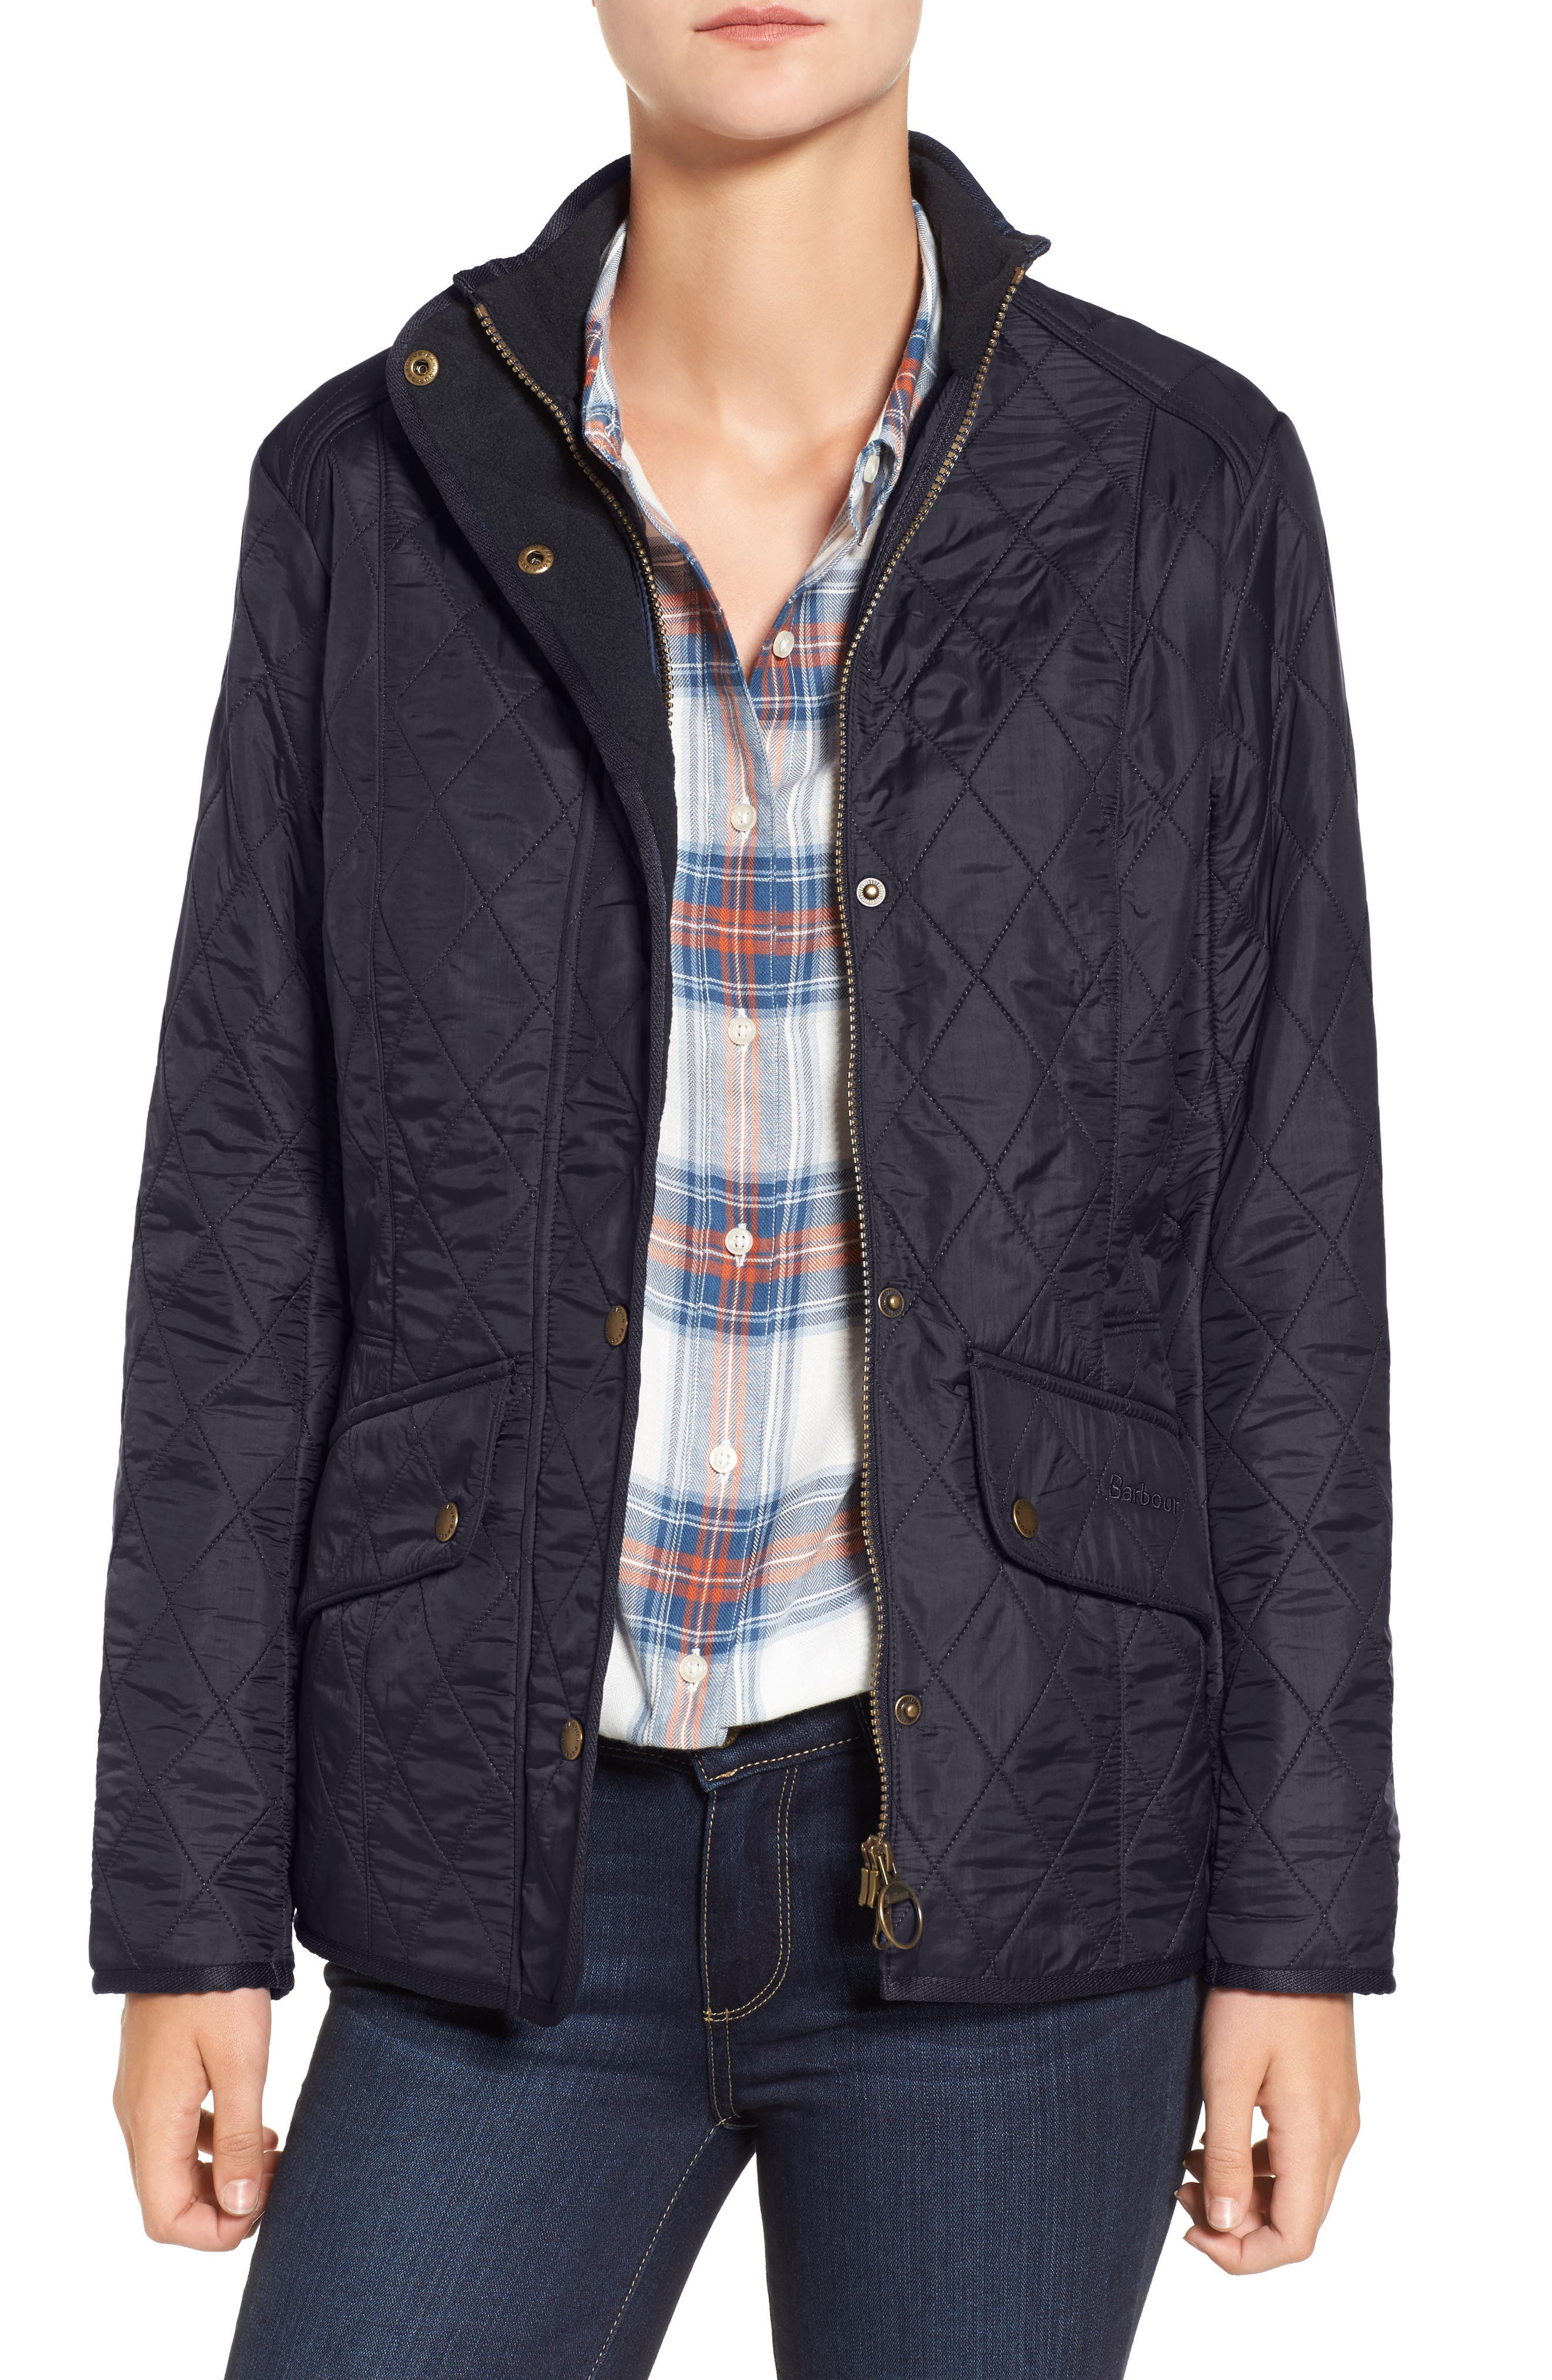 BARBOUR, 'Cavalry' Quilted Jacket, Alternate thumbnail 7, color, 001